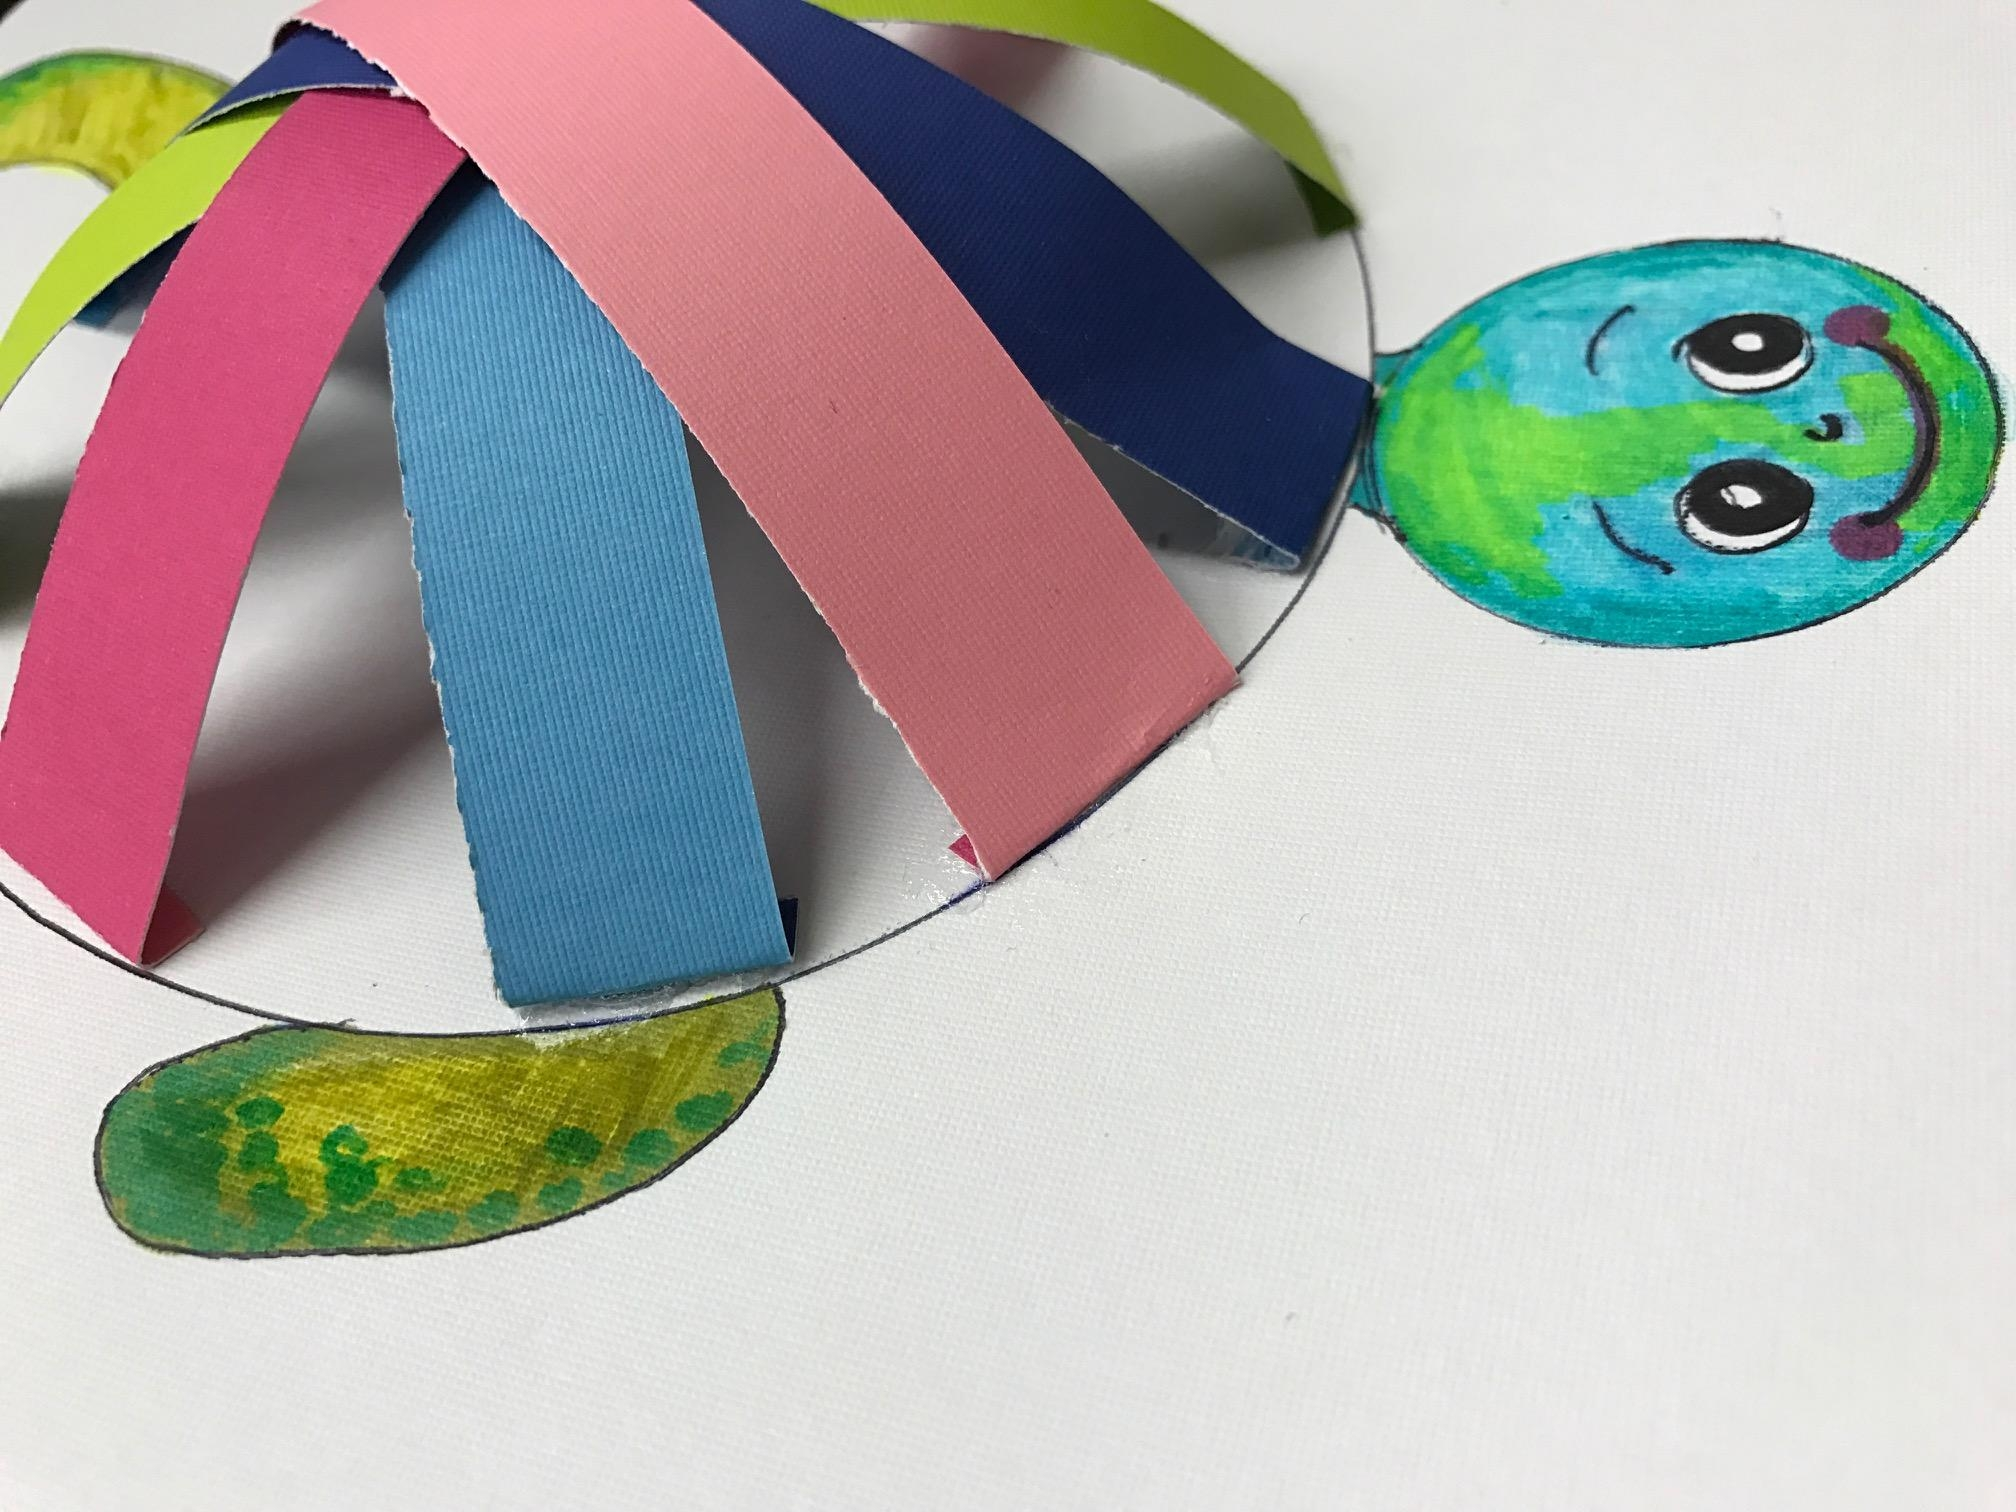 Turtle Wall Art | The Kids Crafts Blog Intended For Flip Flop Wall Art (View 20 of 20)